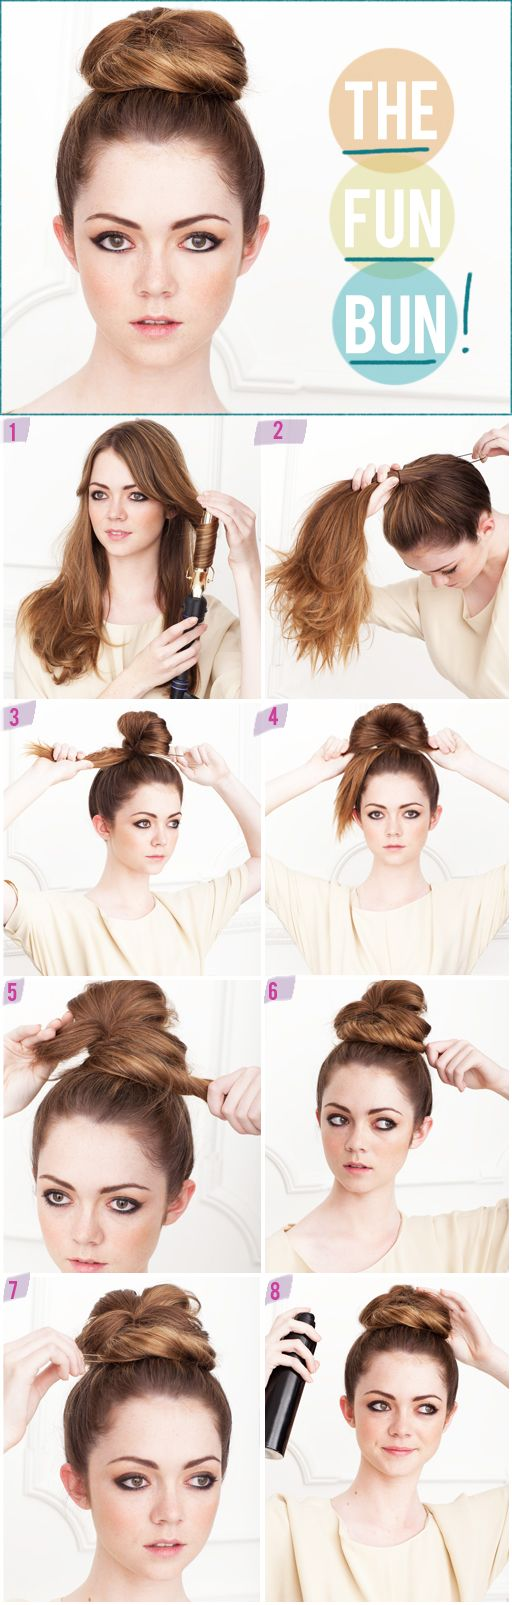 THE FUN BUN aka how to do a top knot.  this is actually really easy for short-ish hair too!  just a few more bobby pins keeping the hair up top.